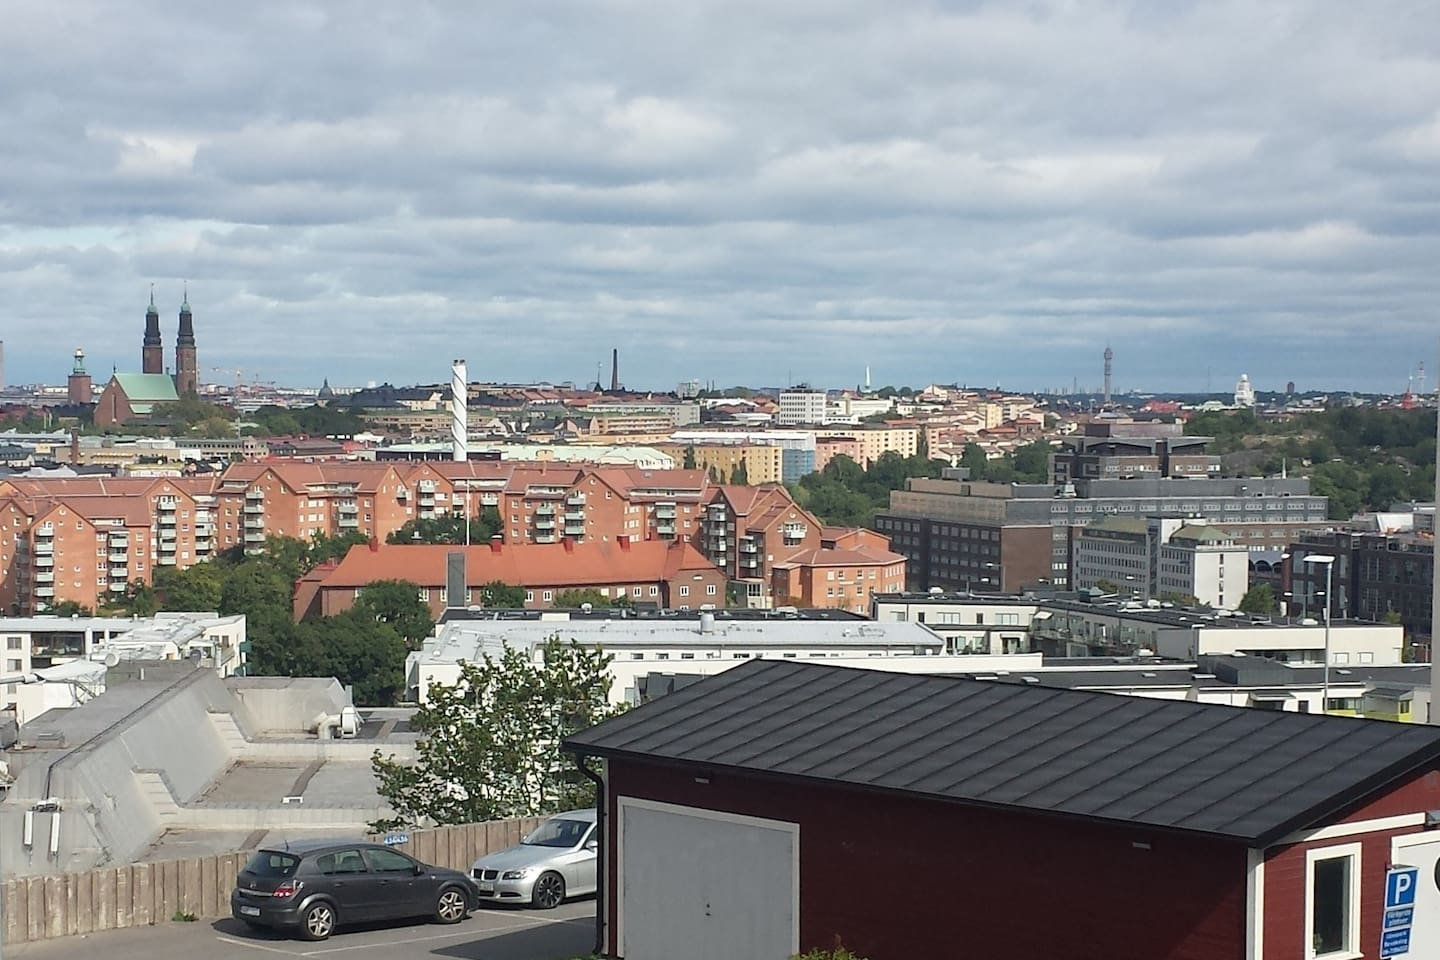 View - the city